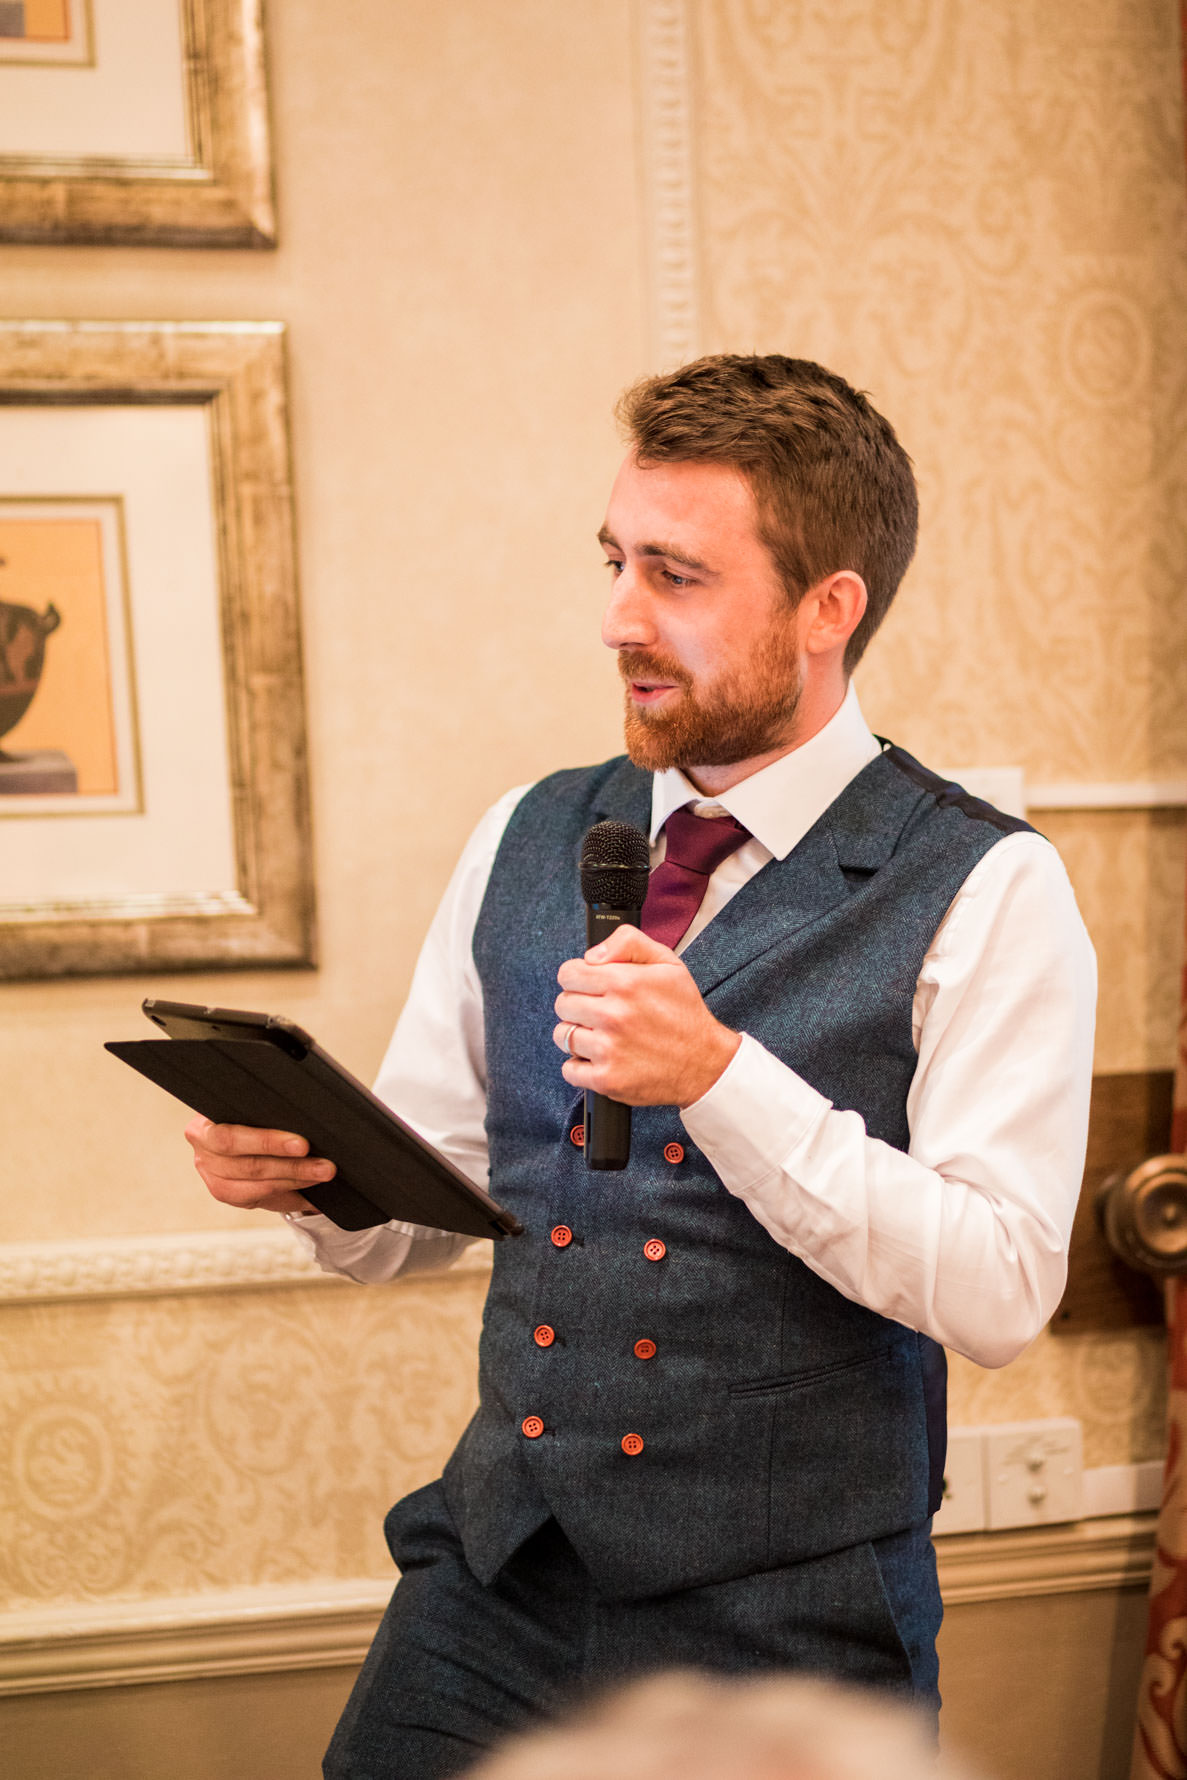 Best man holding wedding speech